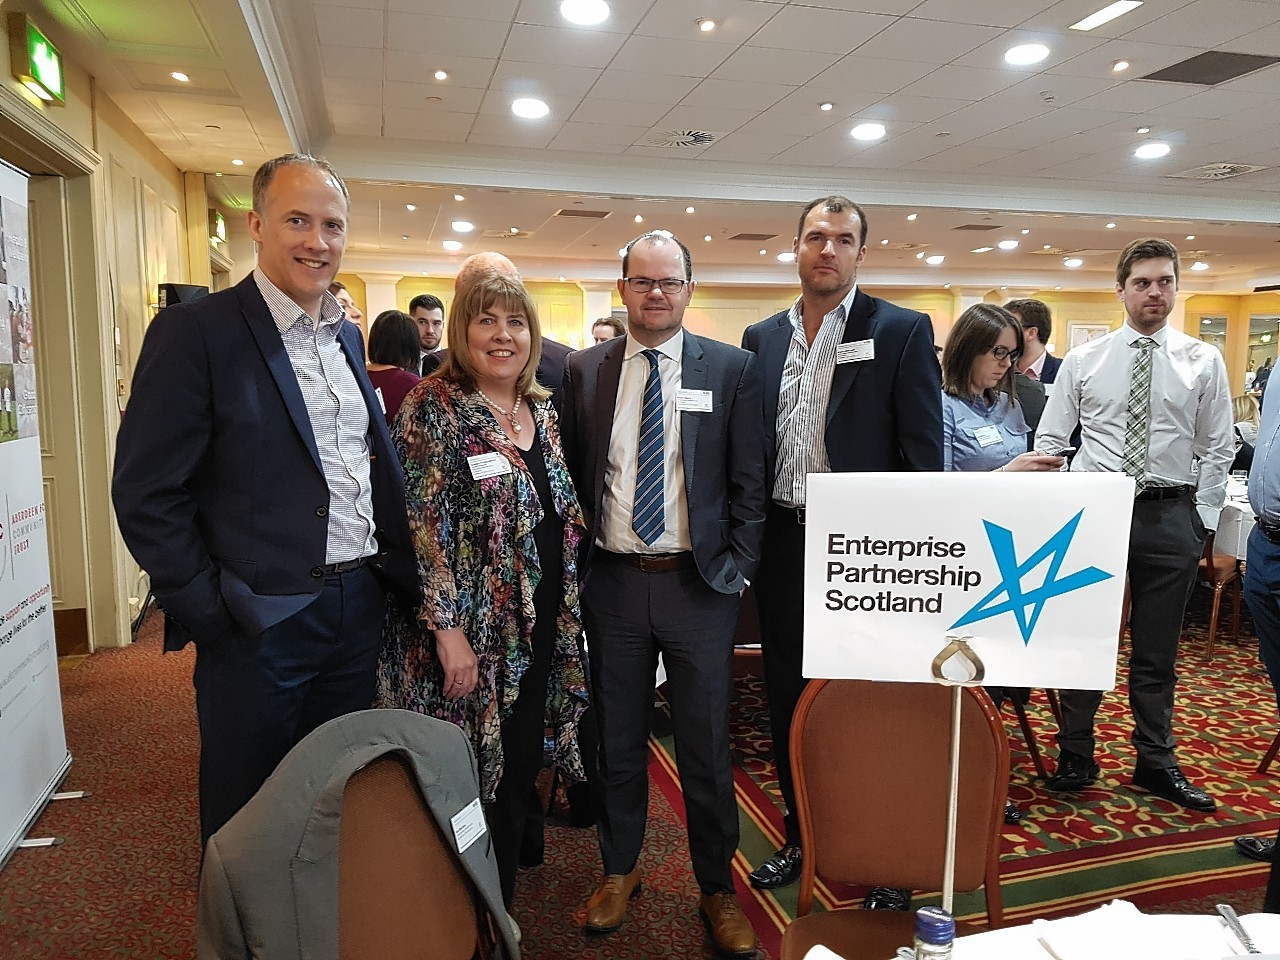 L - R: Stephen Hepburn (Head of Customer Banking, Aberdeen); Carolyn Maniukiewicz (Director, Ideas In Partnership); Brian Moran (Audit Partner); Steve Redhead (Managing Director, Mother Technologies)